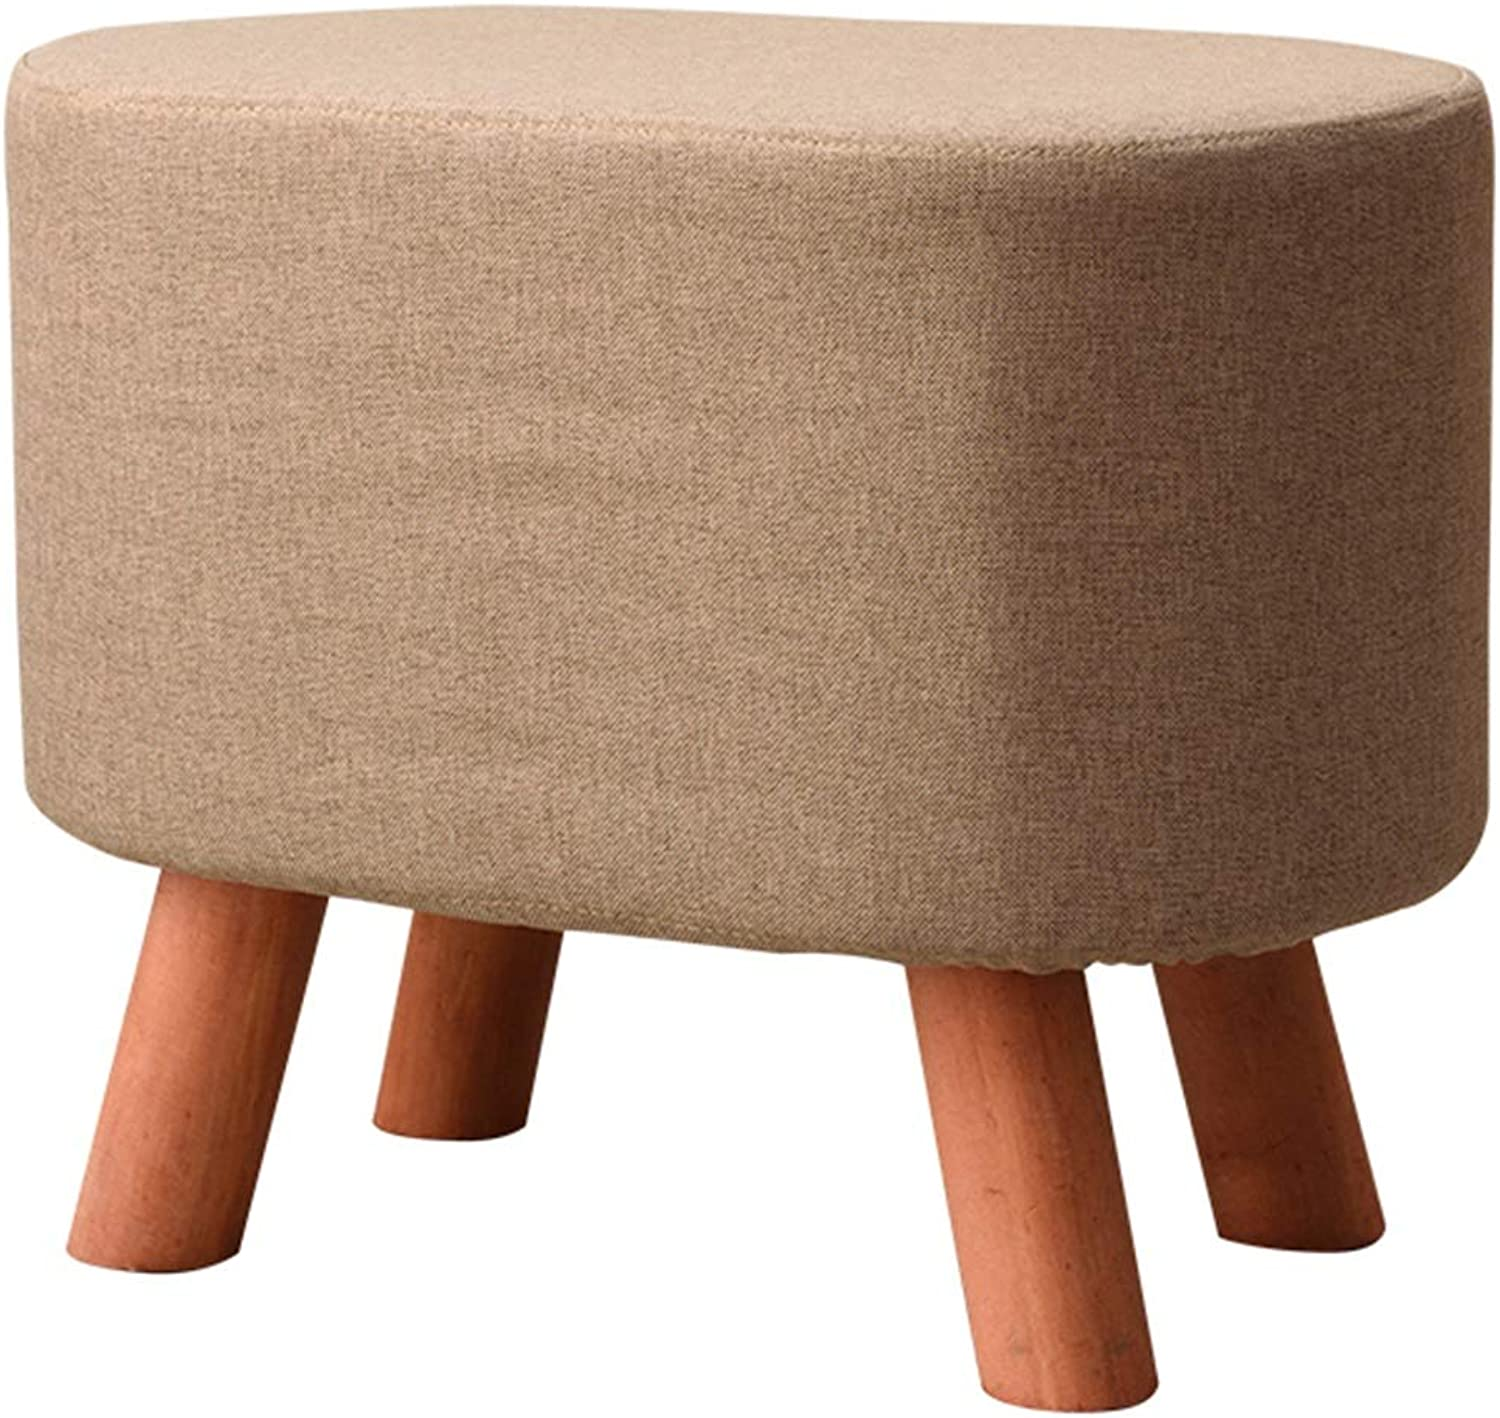 Modern Footstool Upholstered Fabric Seat and Wooden Legs, Small Oval shoes Stool for Bedroom, Livingroom, Brown (color   Brwon)